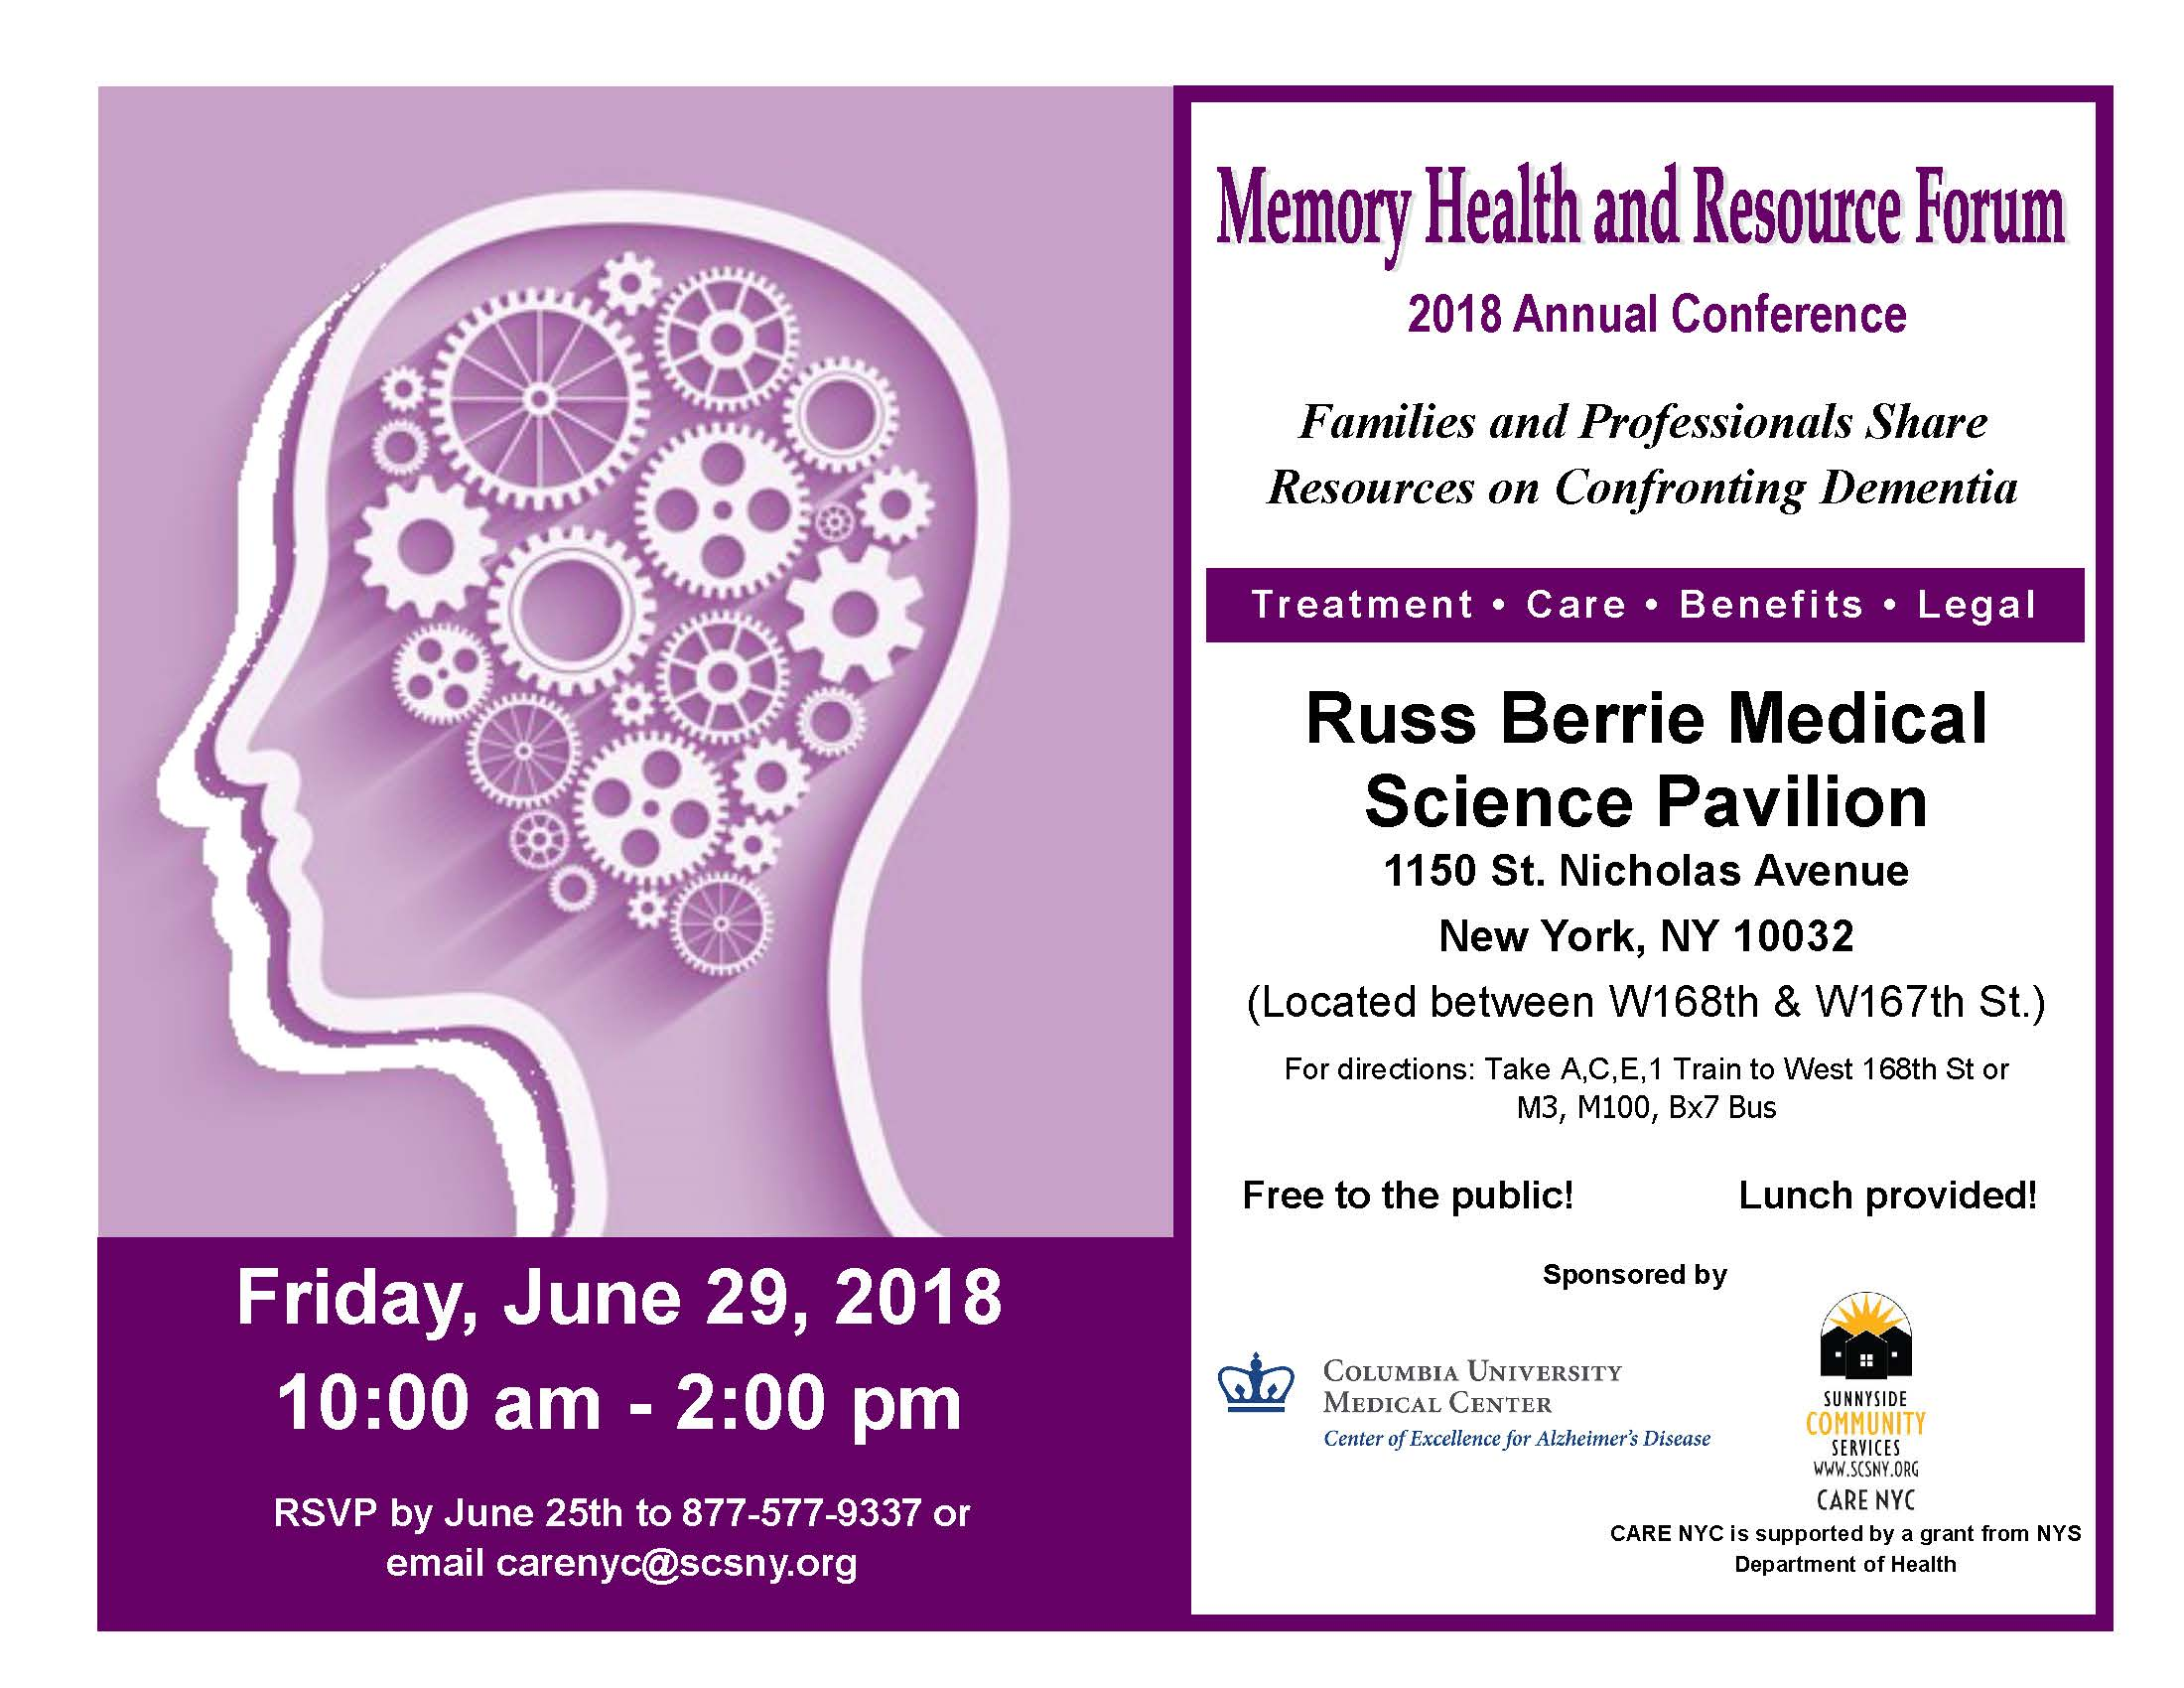 Memory Health and Resource Forum flyer